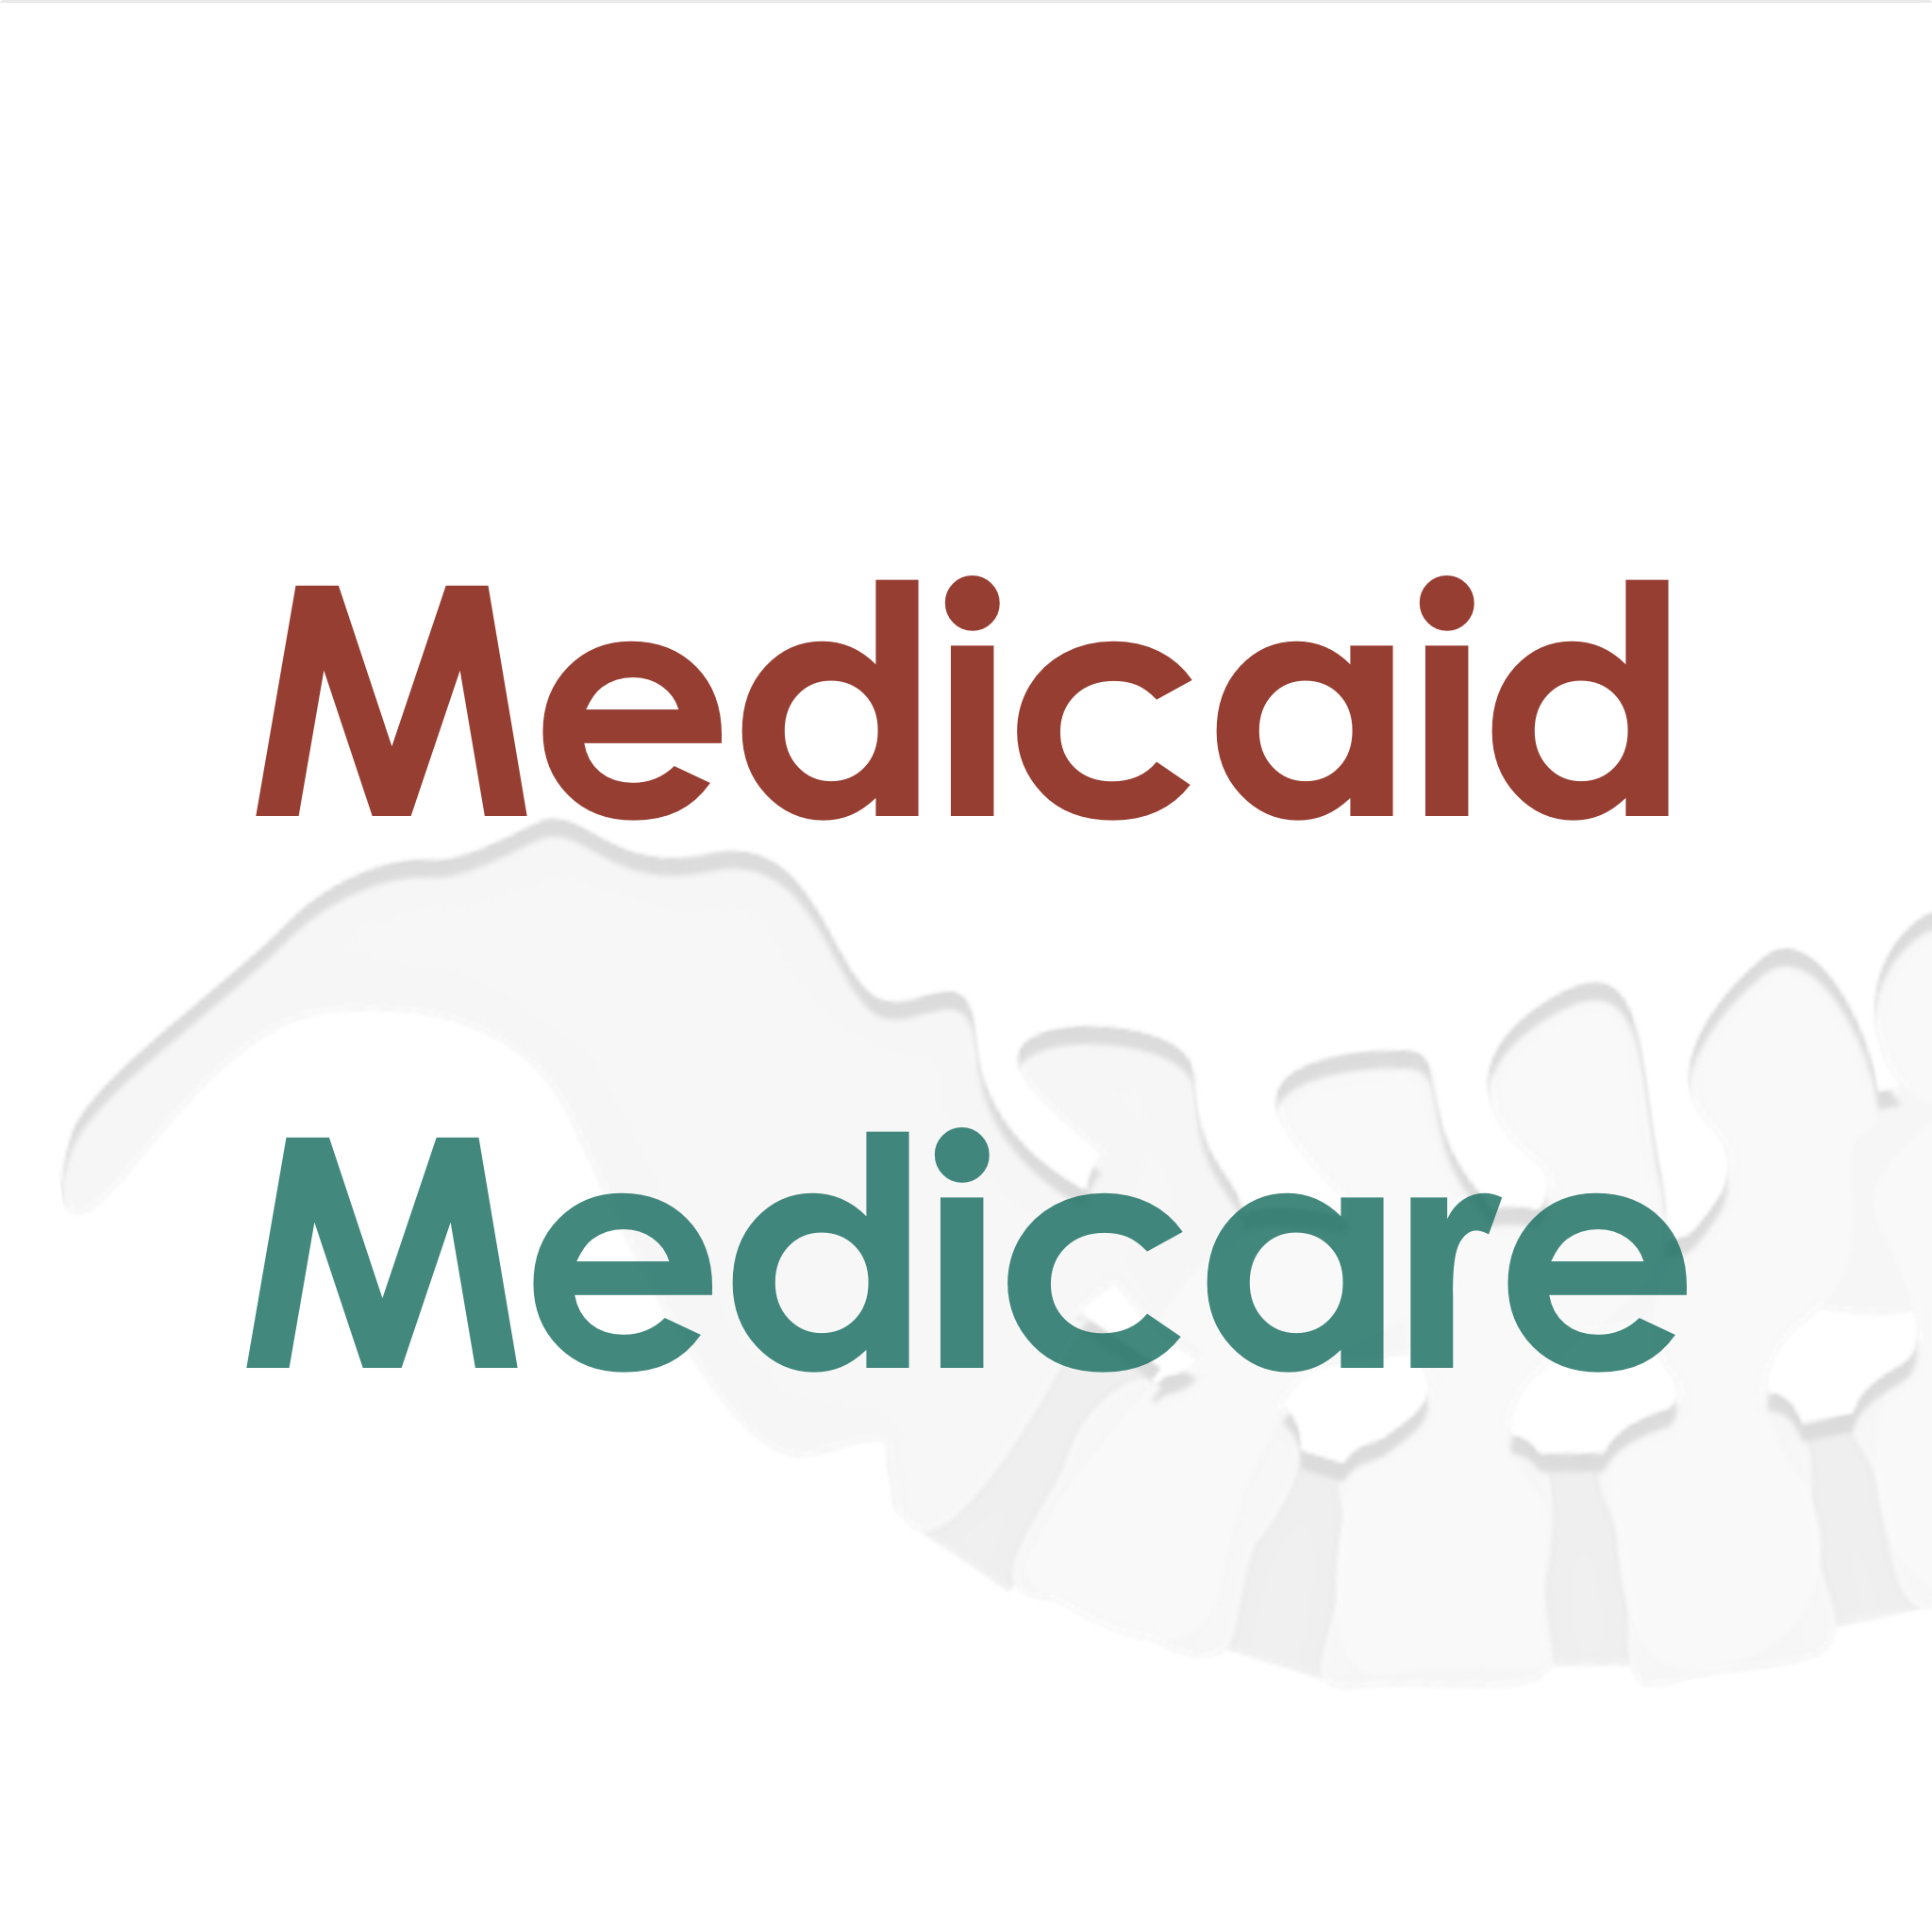 Insurance-Accepted-Medicare-Medicaid